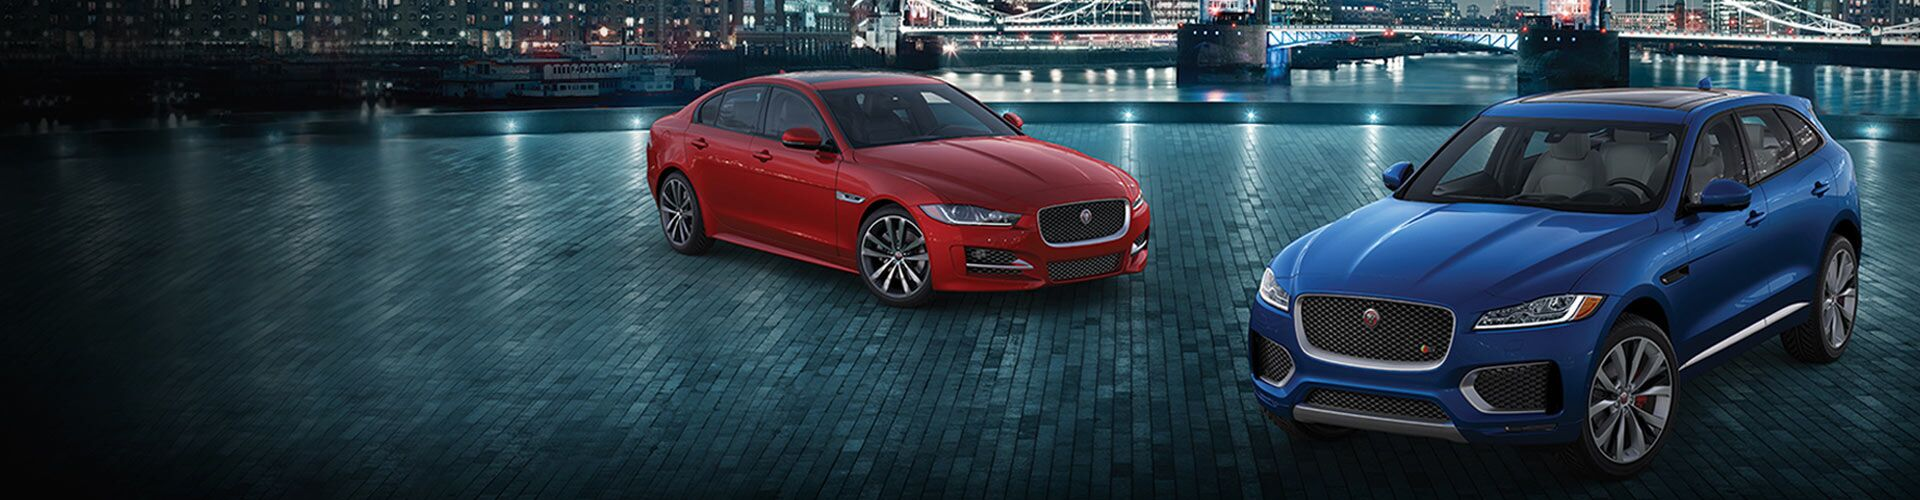 The New Generation of Jaguar